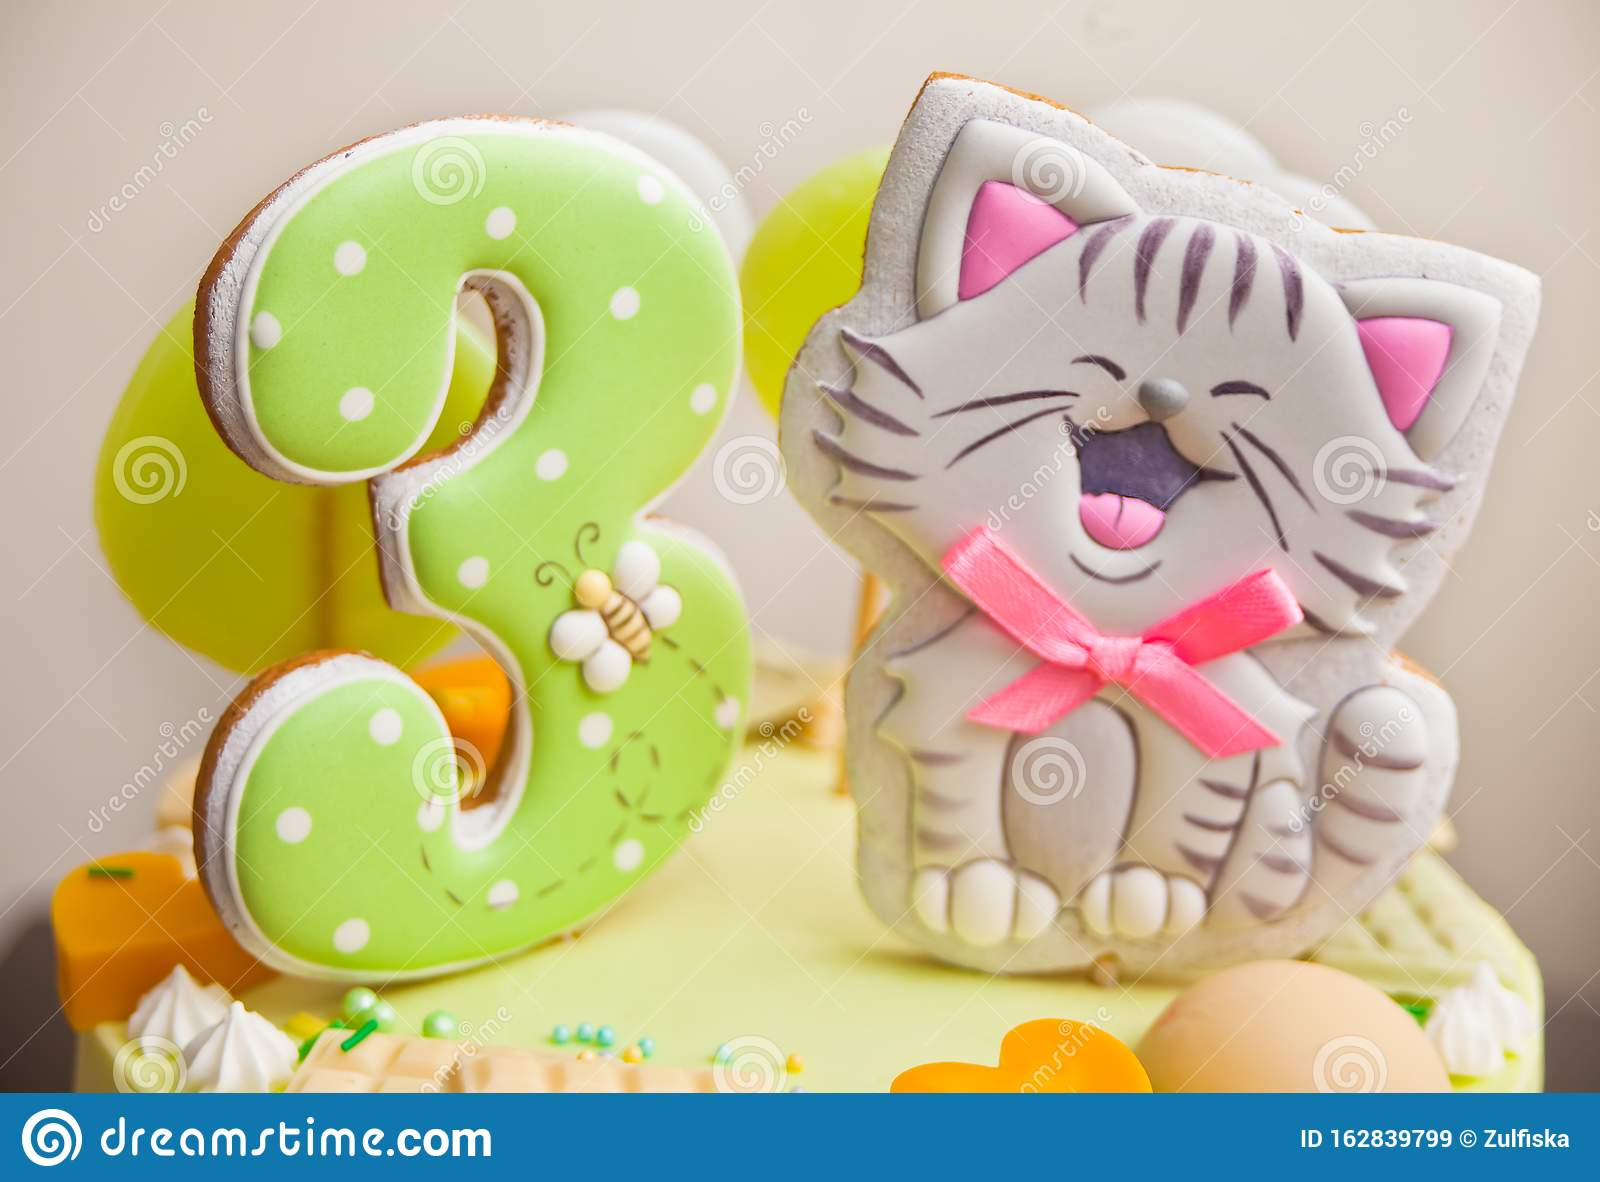 Awesome Close Up Birthday Cake For Little Girl Decorated Funny Cookies Personalised Birthday Cards Veneteletsinfo